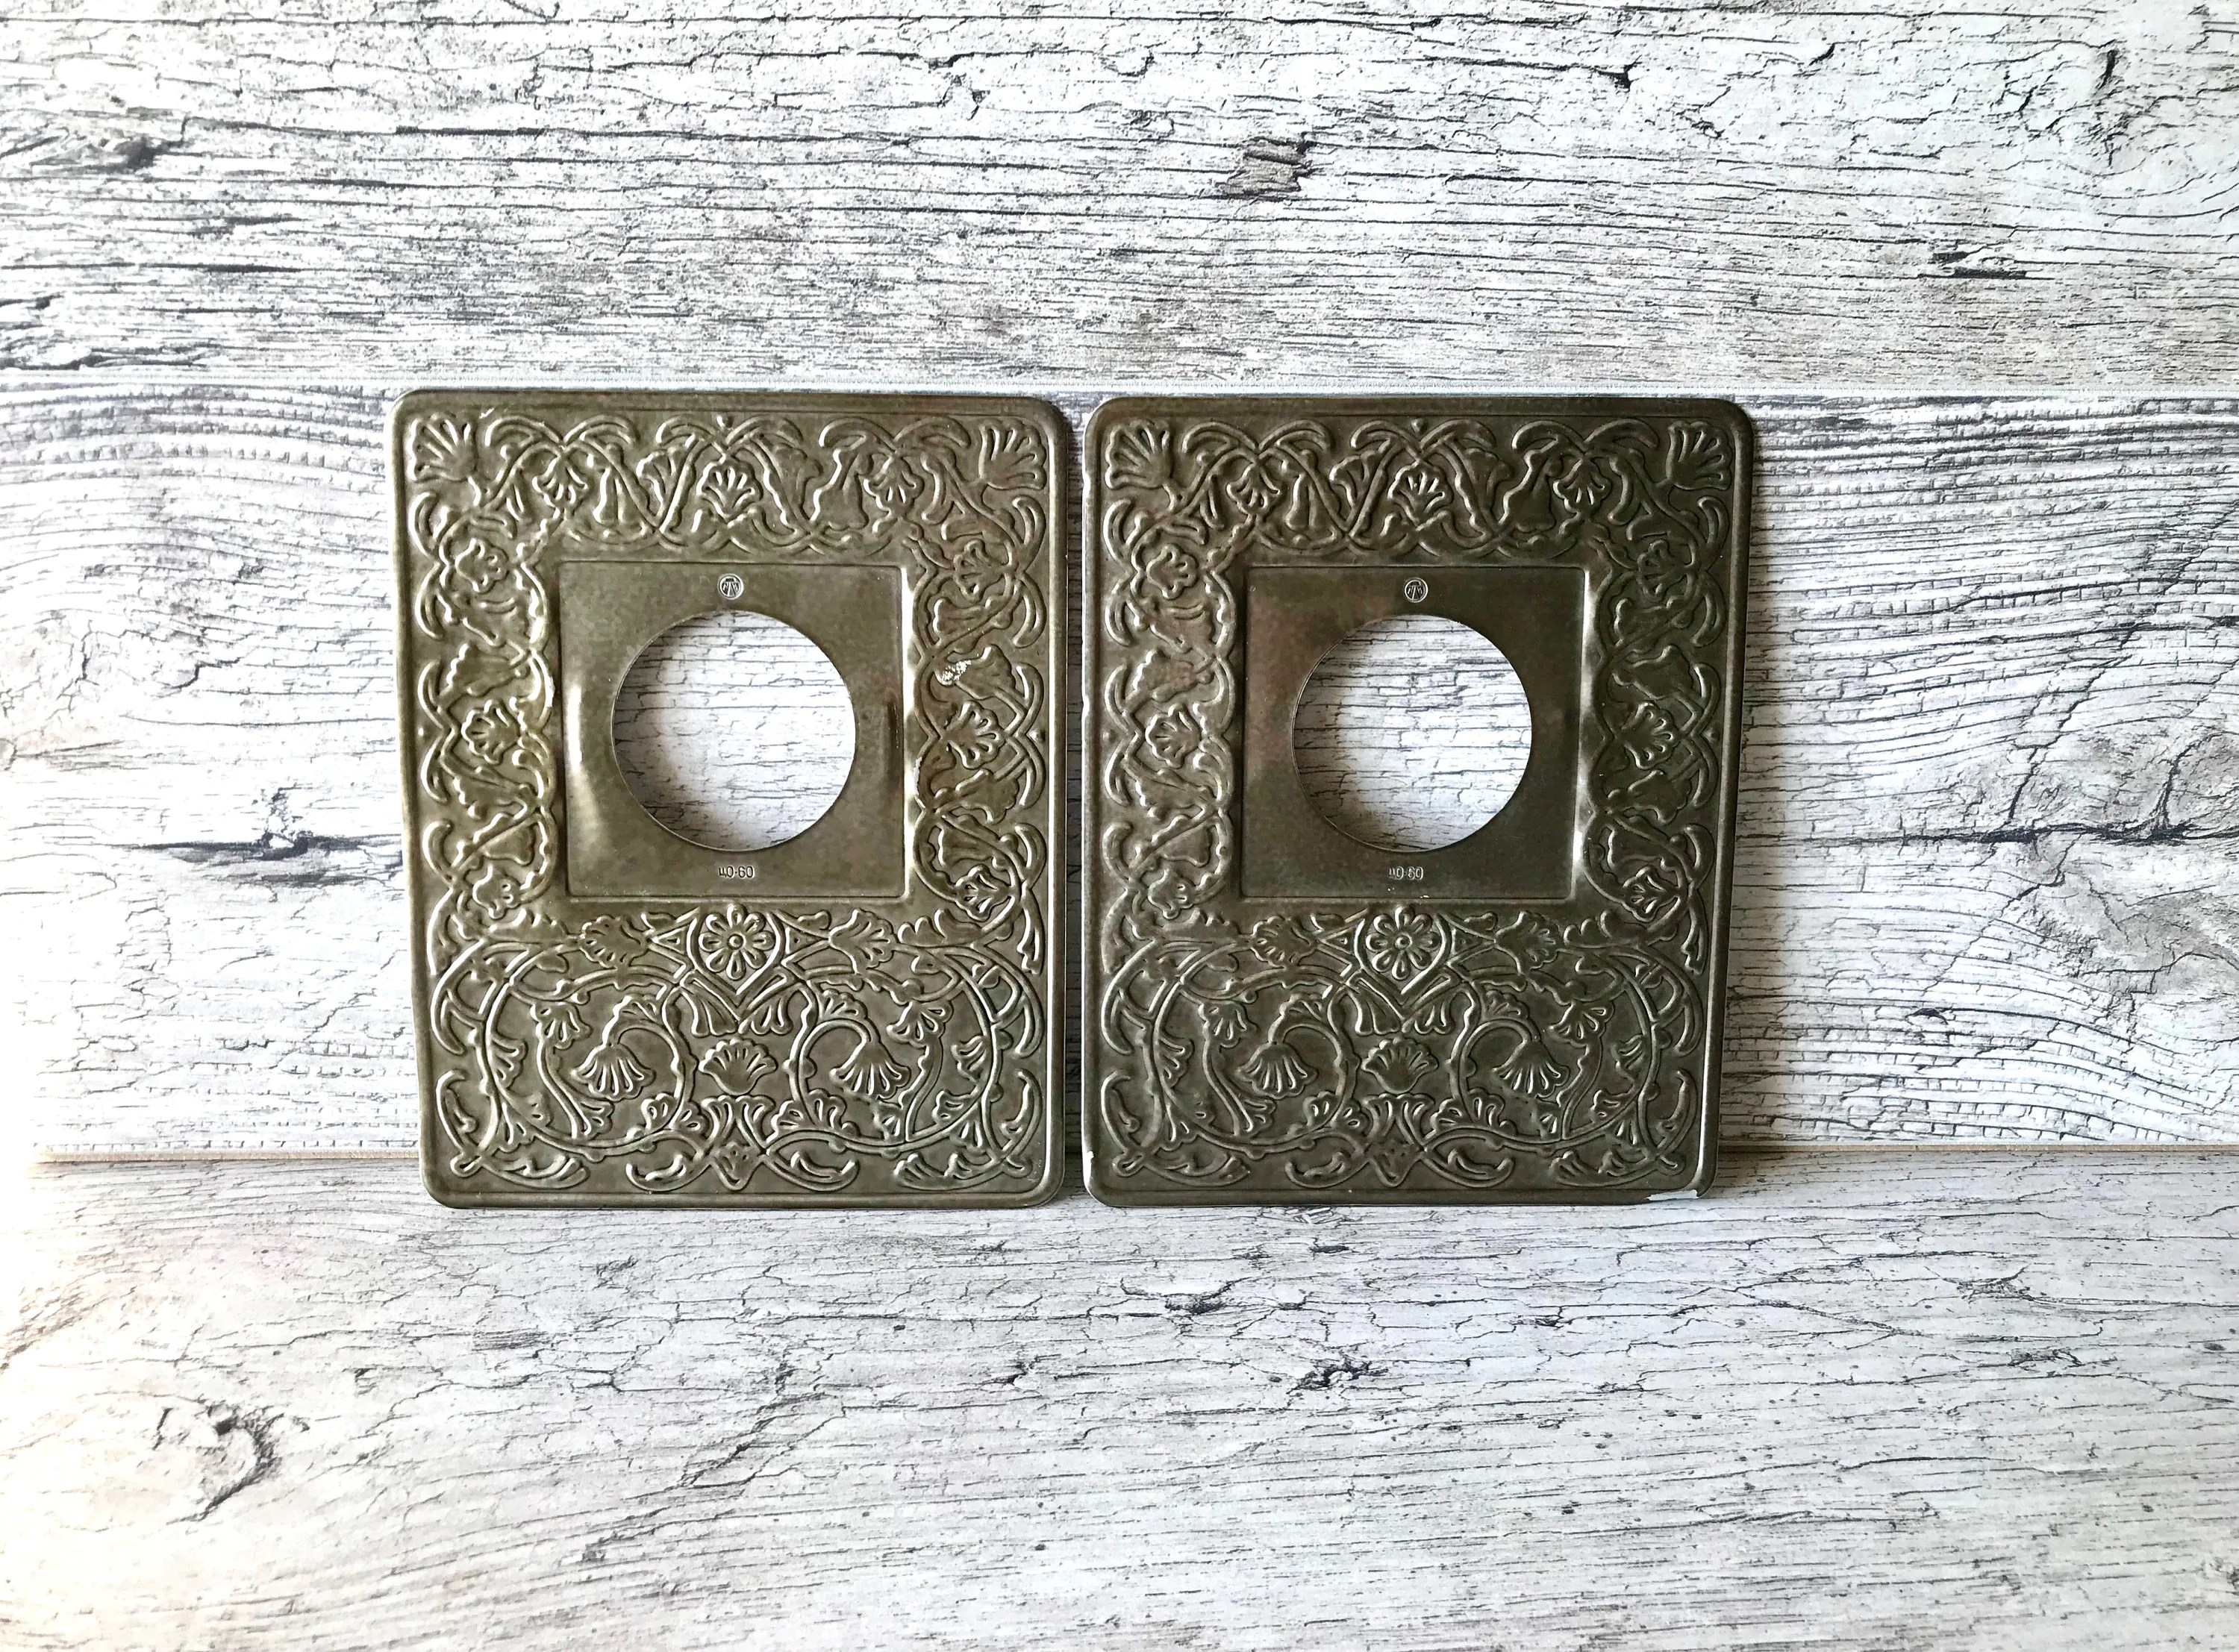 Vintage Light Switch Plate Covers Light Switch Cover Light Switch Plate Two Metal Light Switch Covers Vintage Light Switch Covers Home Decor Light Cover Ussr Soviet Retro